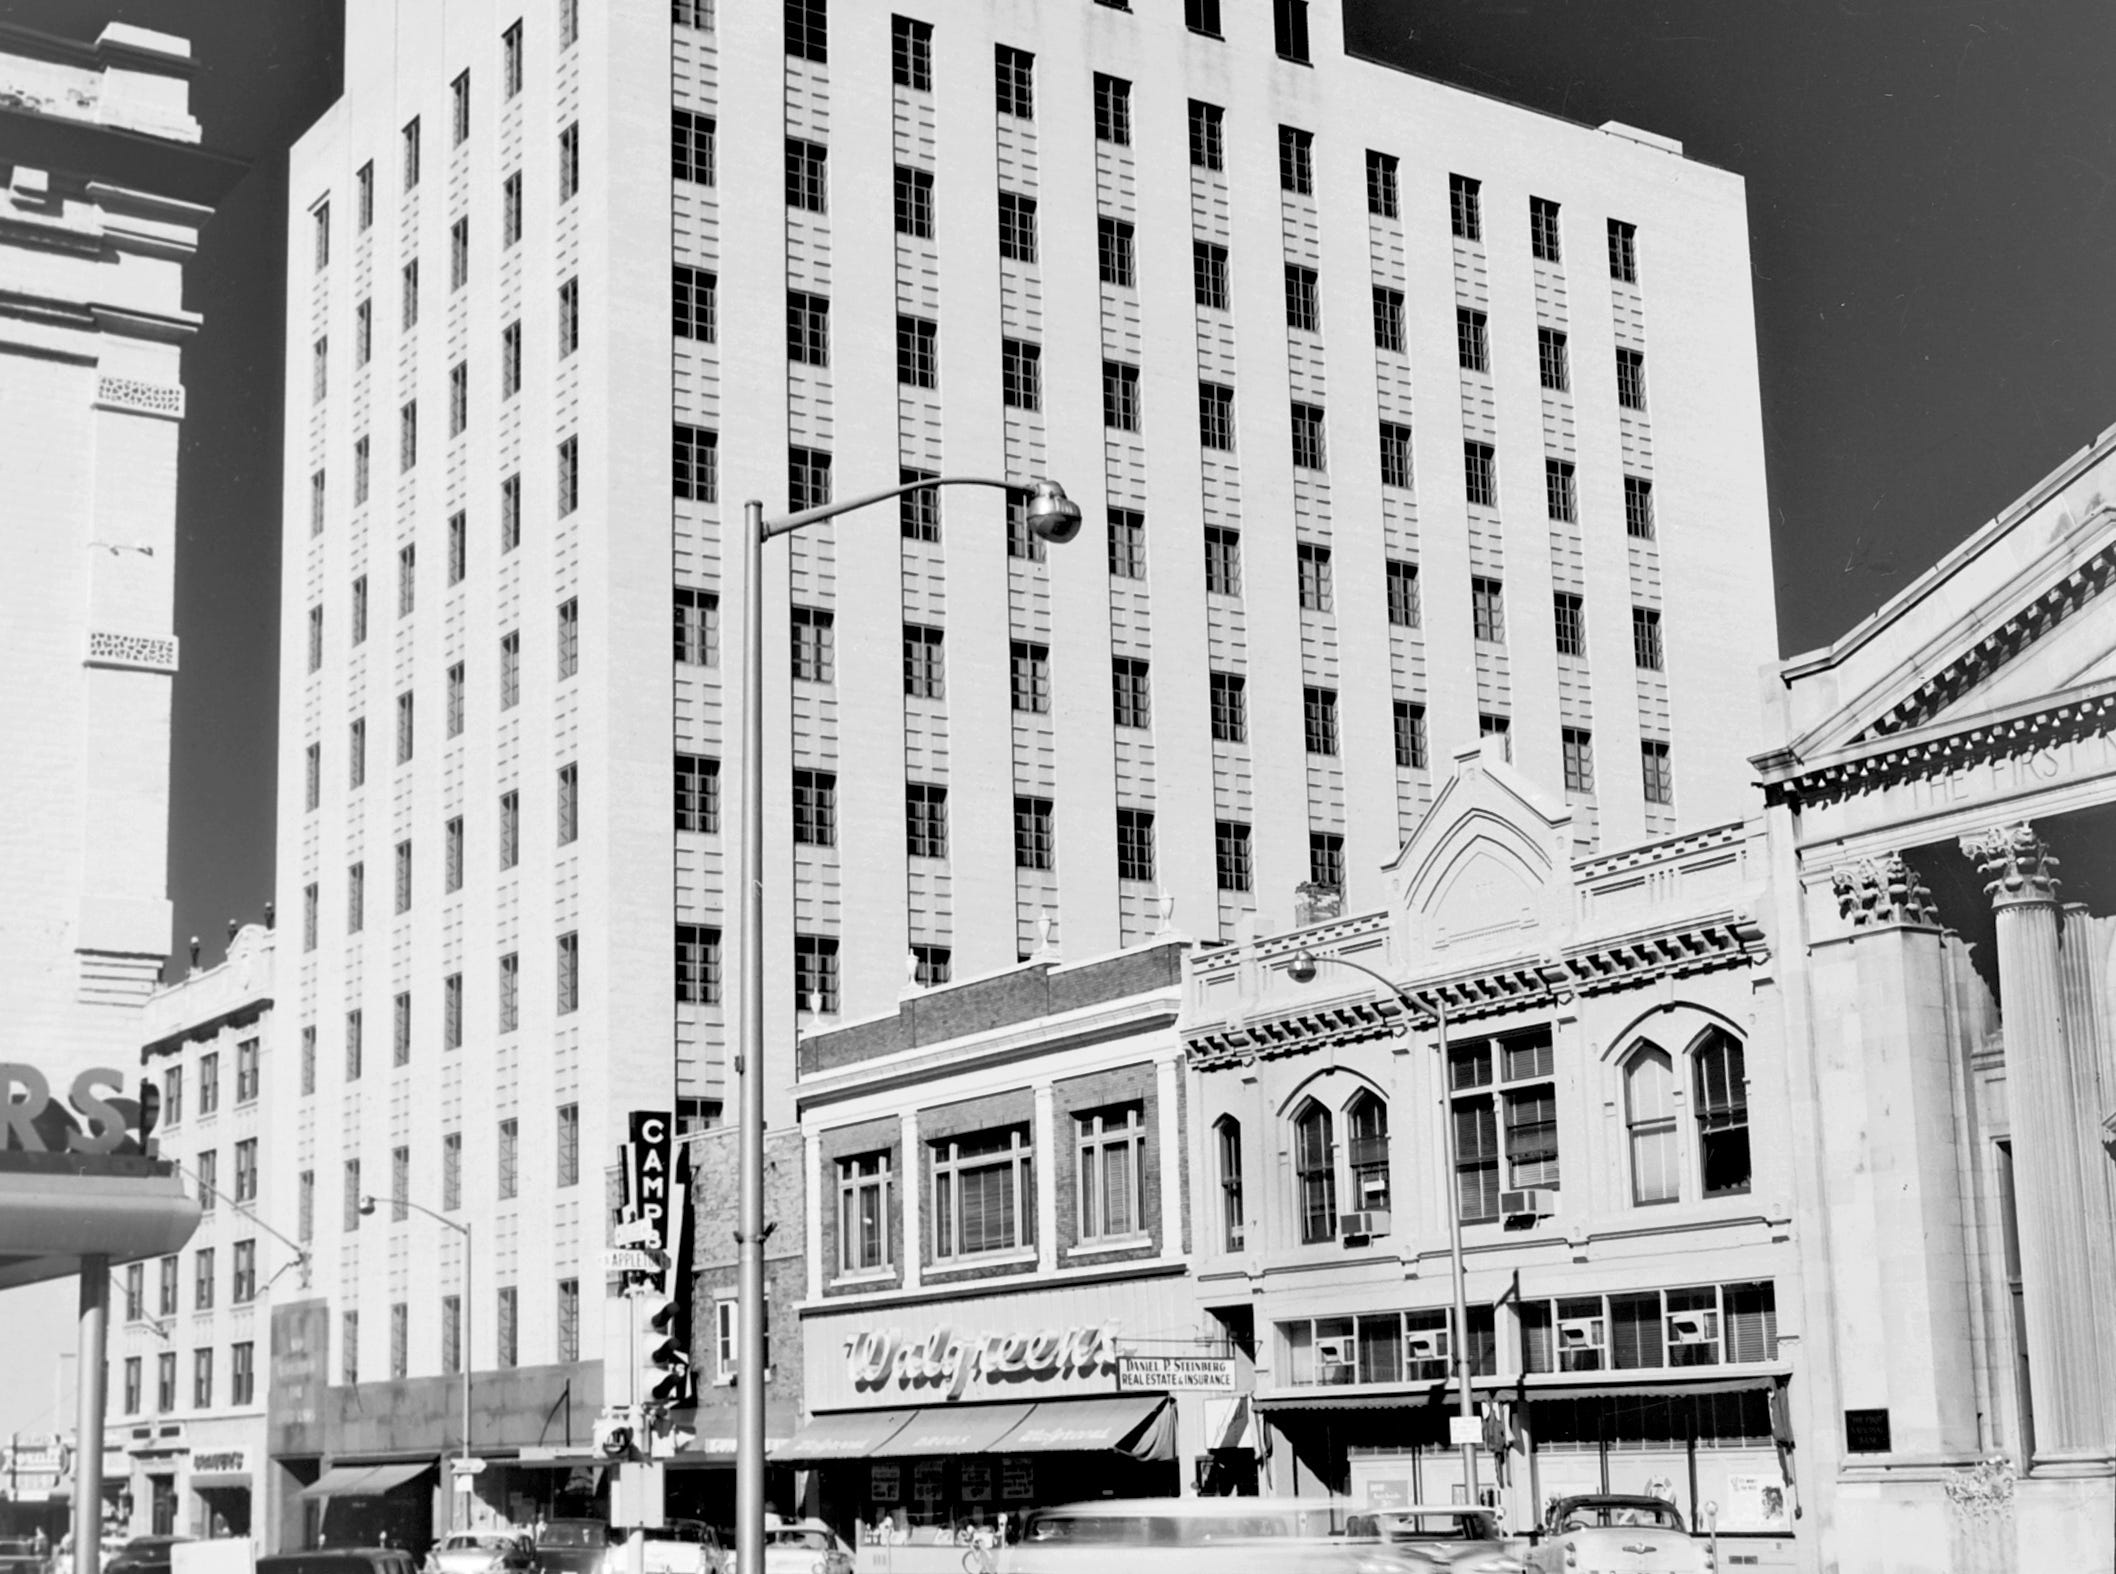 1957 Downtown Appleton. 200 West block on the north side of College Avenue: Aid Association for Lutherans. Campbell Store. Walgreens. Rueckl Studio. Daniel P. Steinberg Real Estate. STORE. First National Bank. Post-Crescent photo by staff.